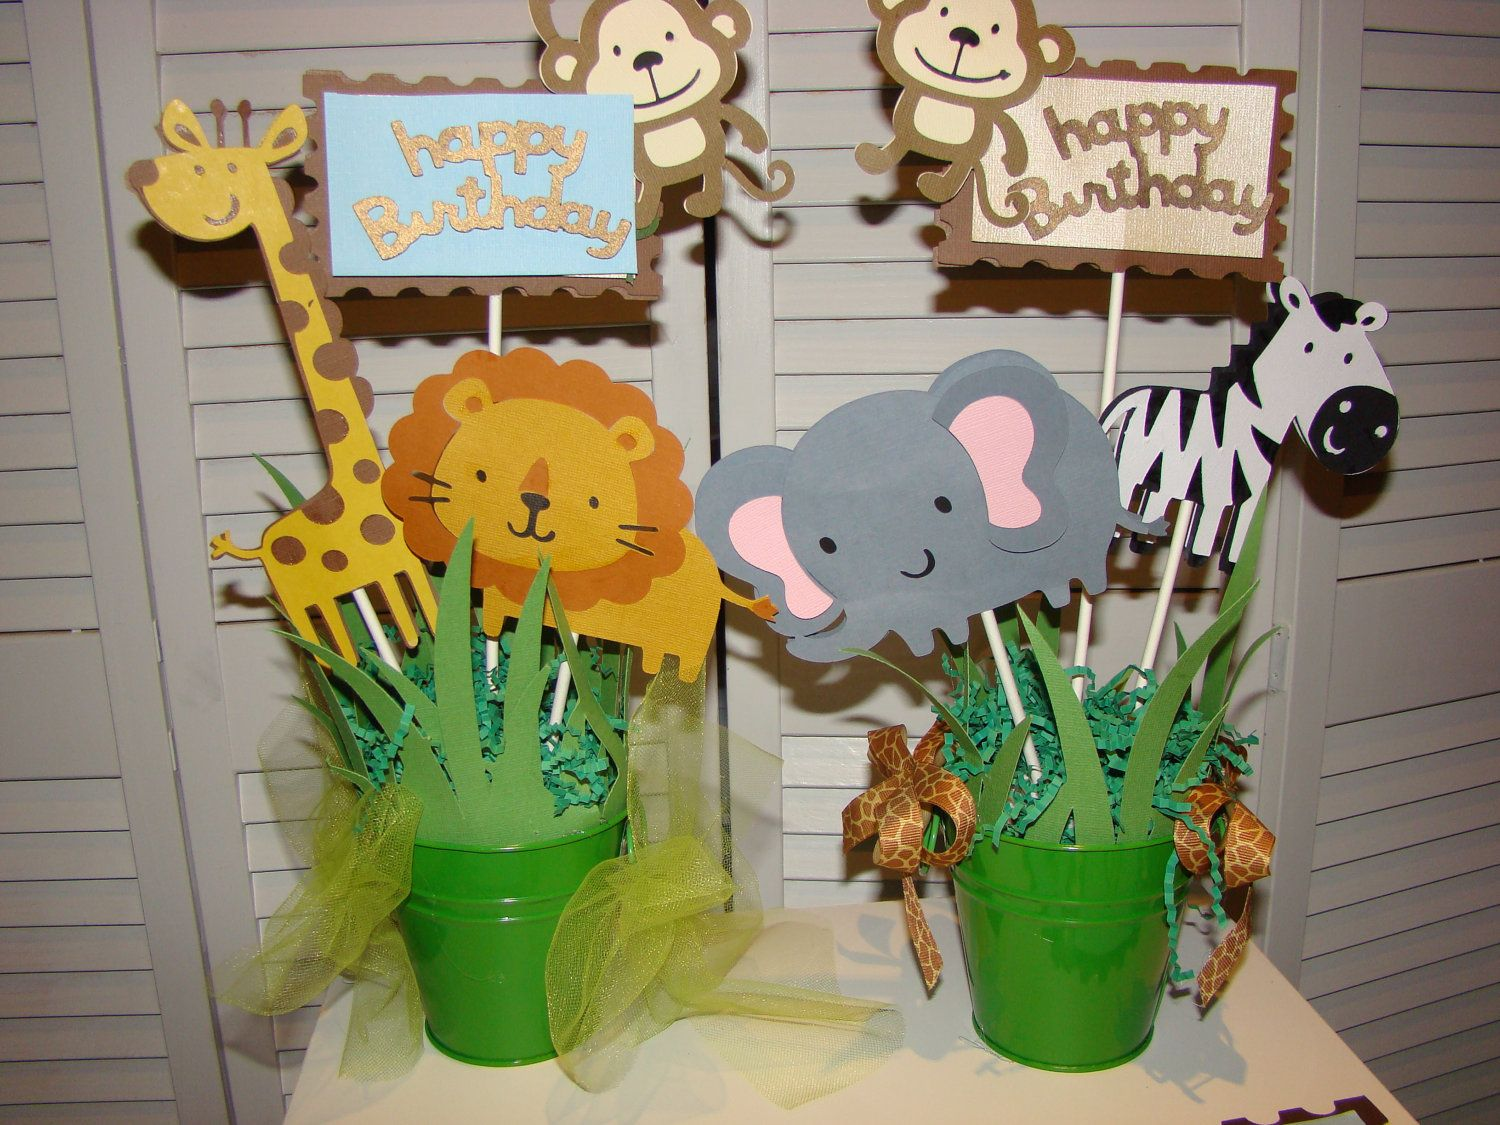 Jungle table decorations adapt idea for discovery center for Animal themed bathroom decor